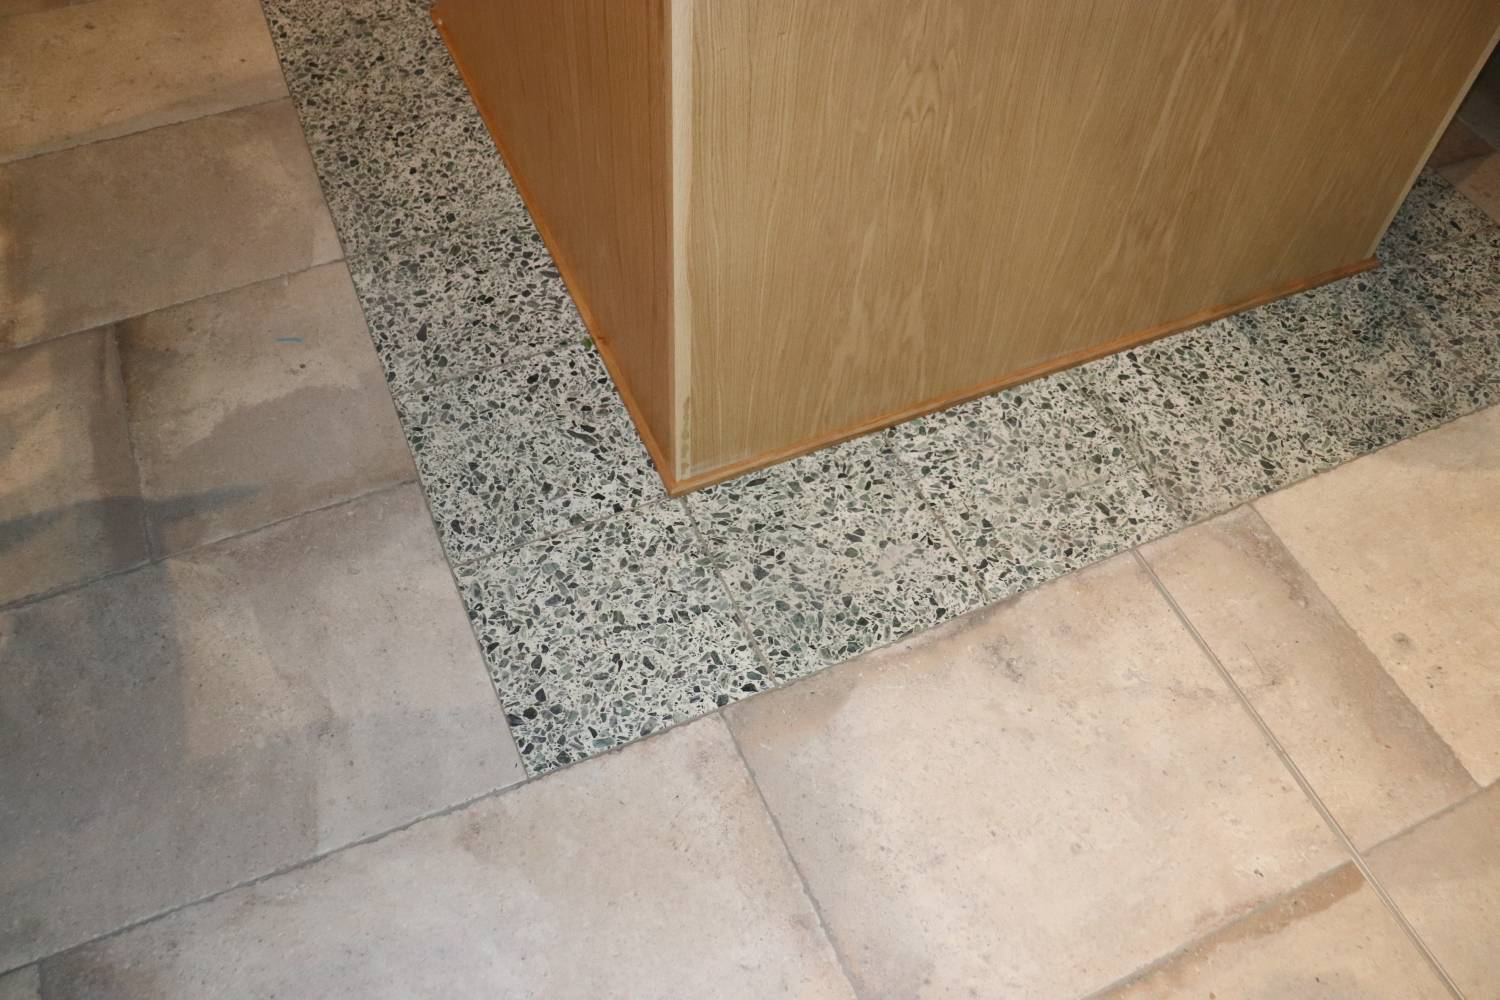 Terrazzo Floor Tiles at Foodwell Restaurant Deansgate Manchester